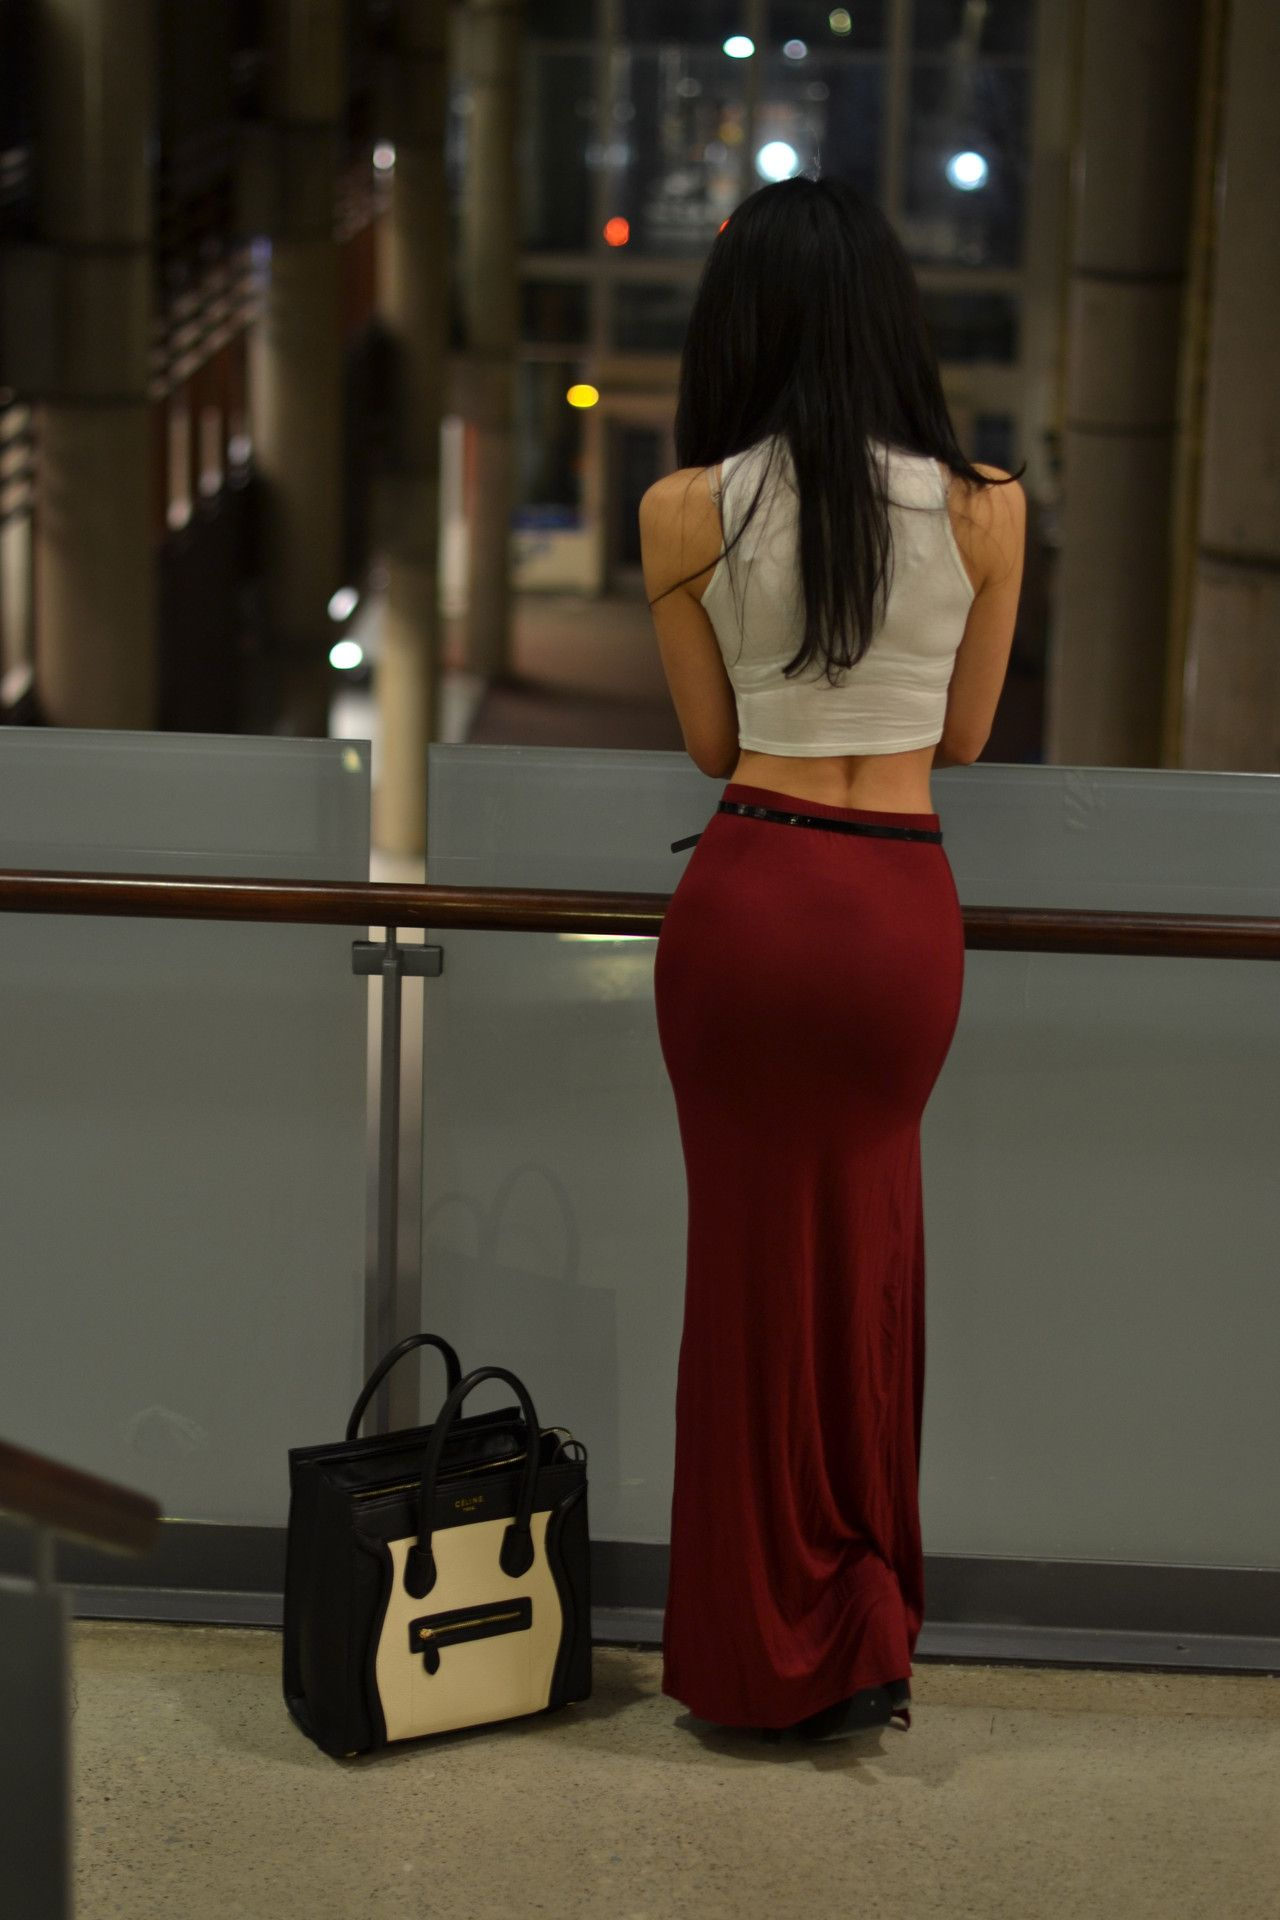 Having such a beautiful body makes even the long skirts look sexy...